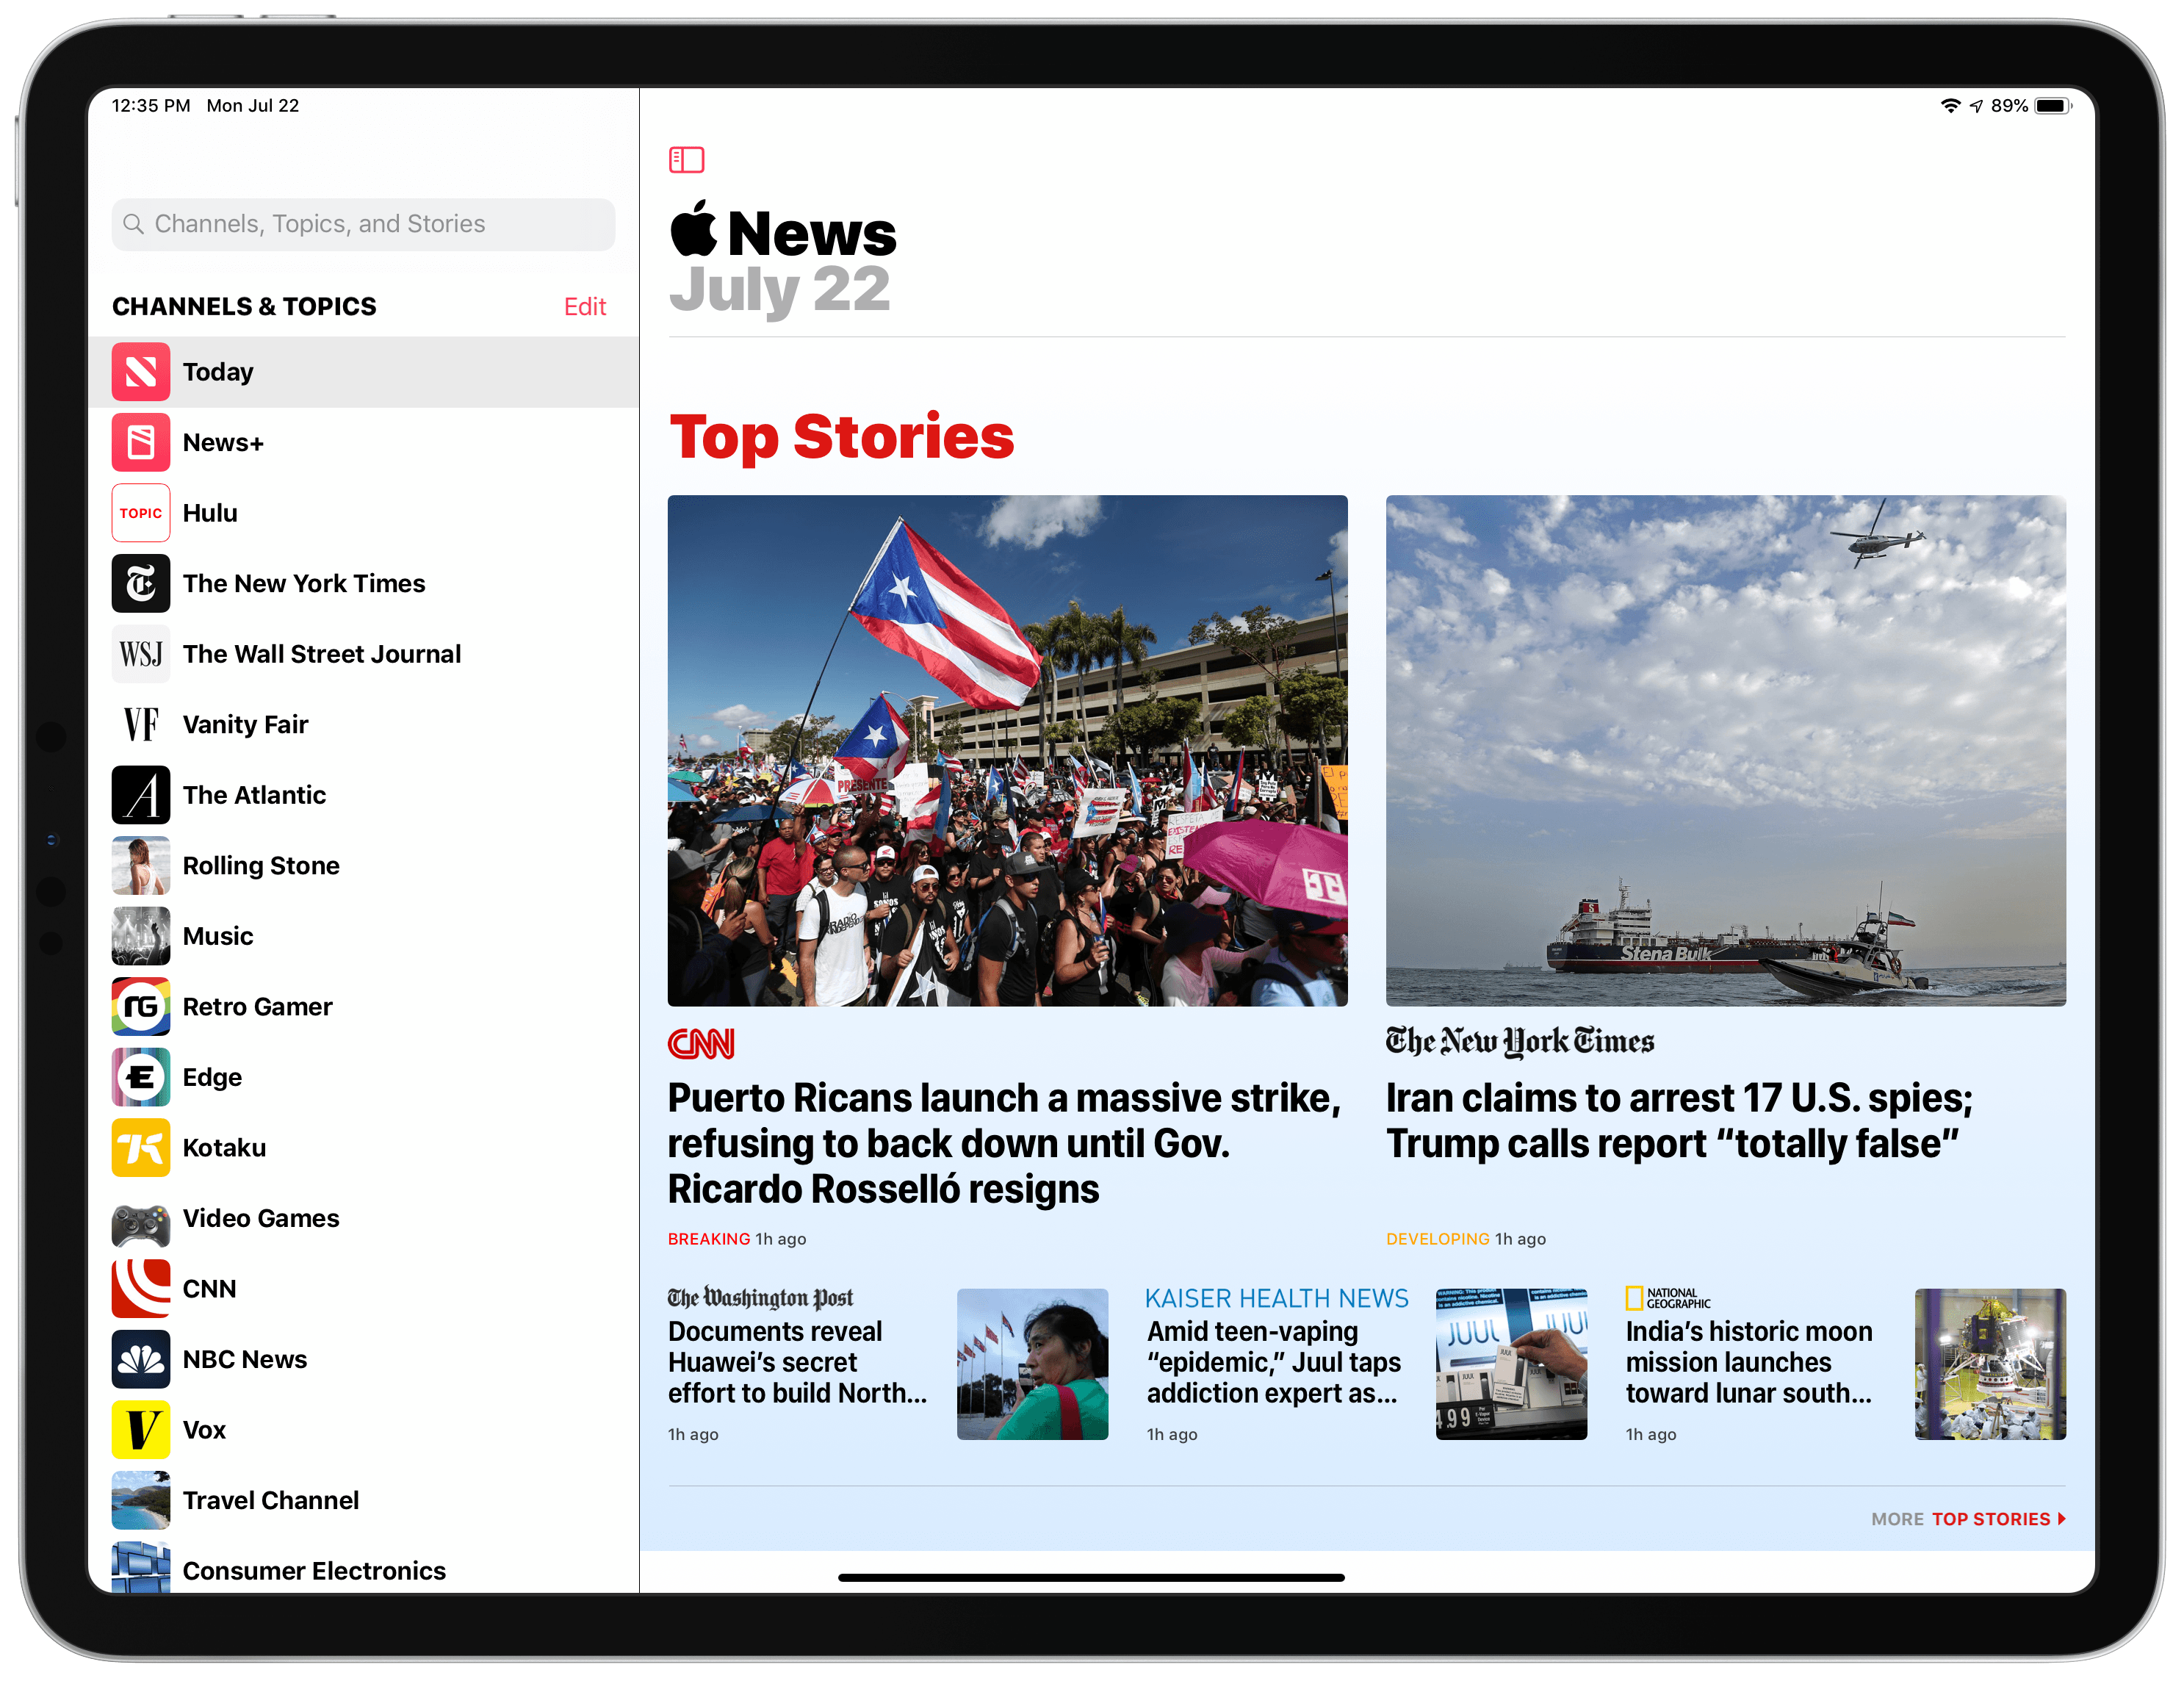 Apple Releases iOS 12.4 Update with Improvements to Apple News, iPhone Migration Tool, and Other Changes But No Apple Card